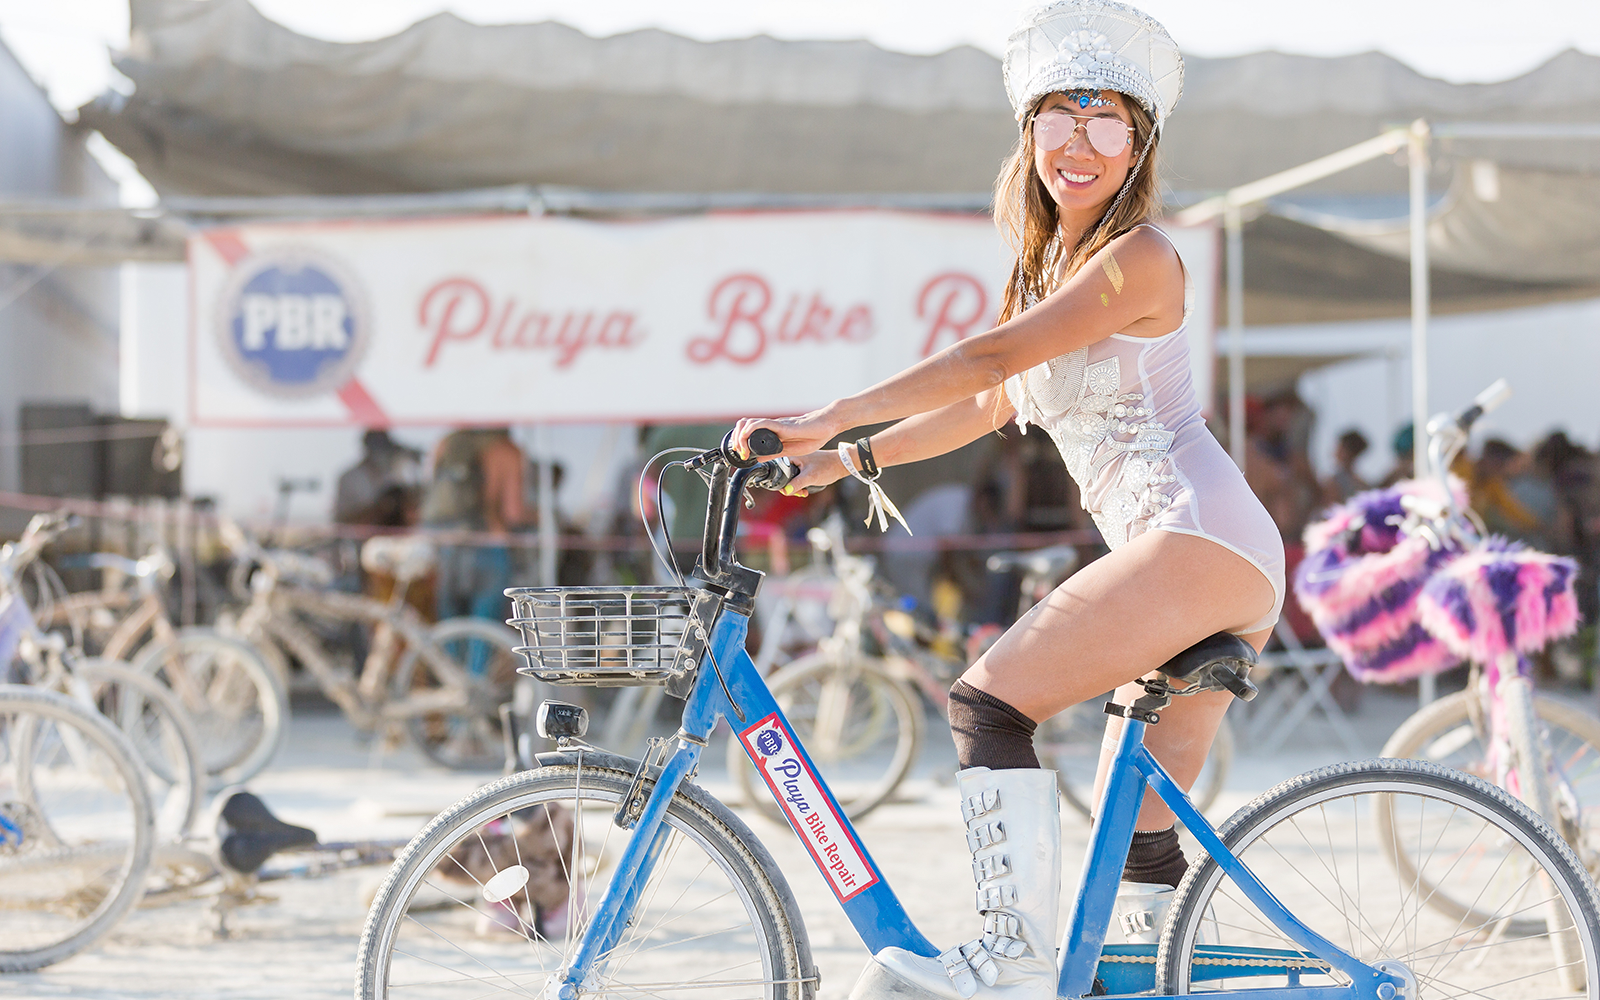 What makes a great Burning Man Bike?